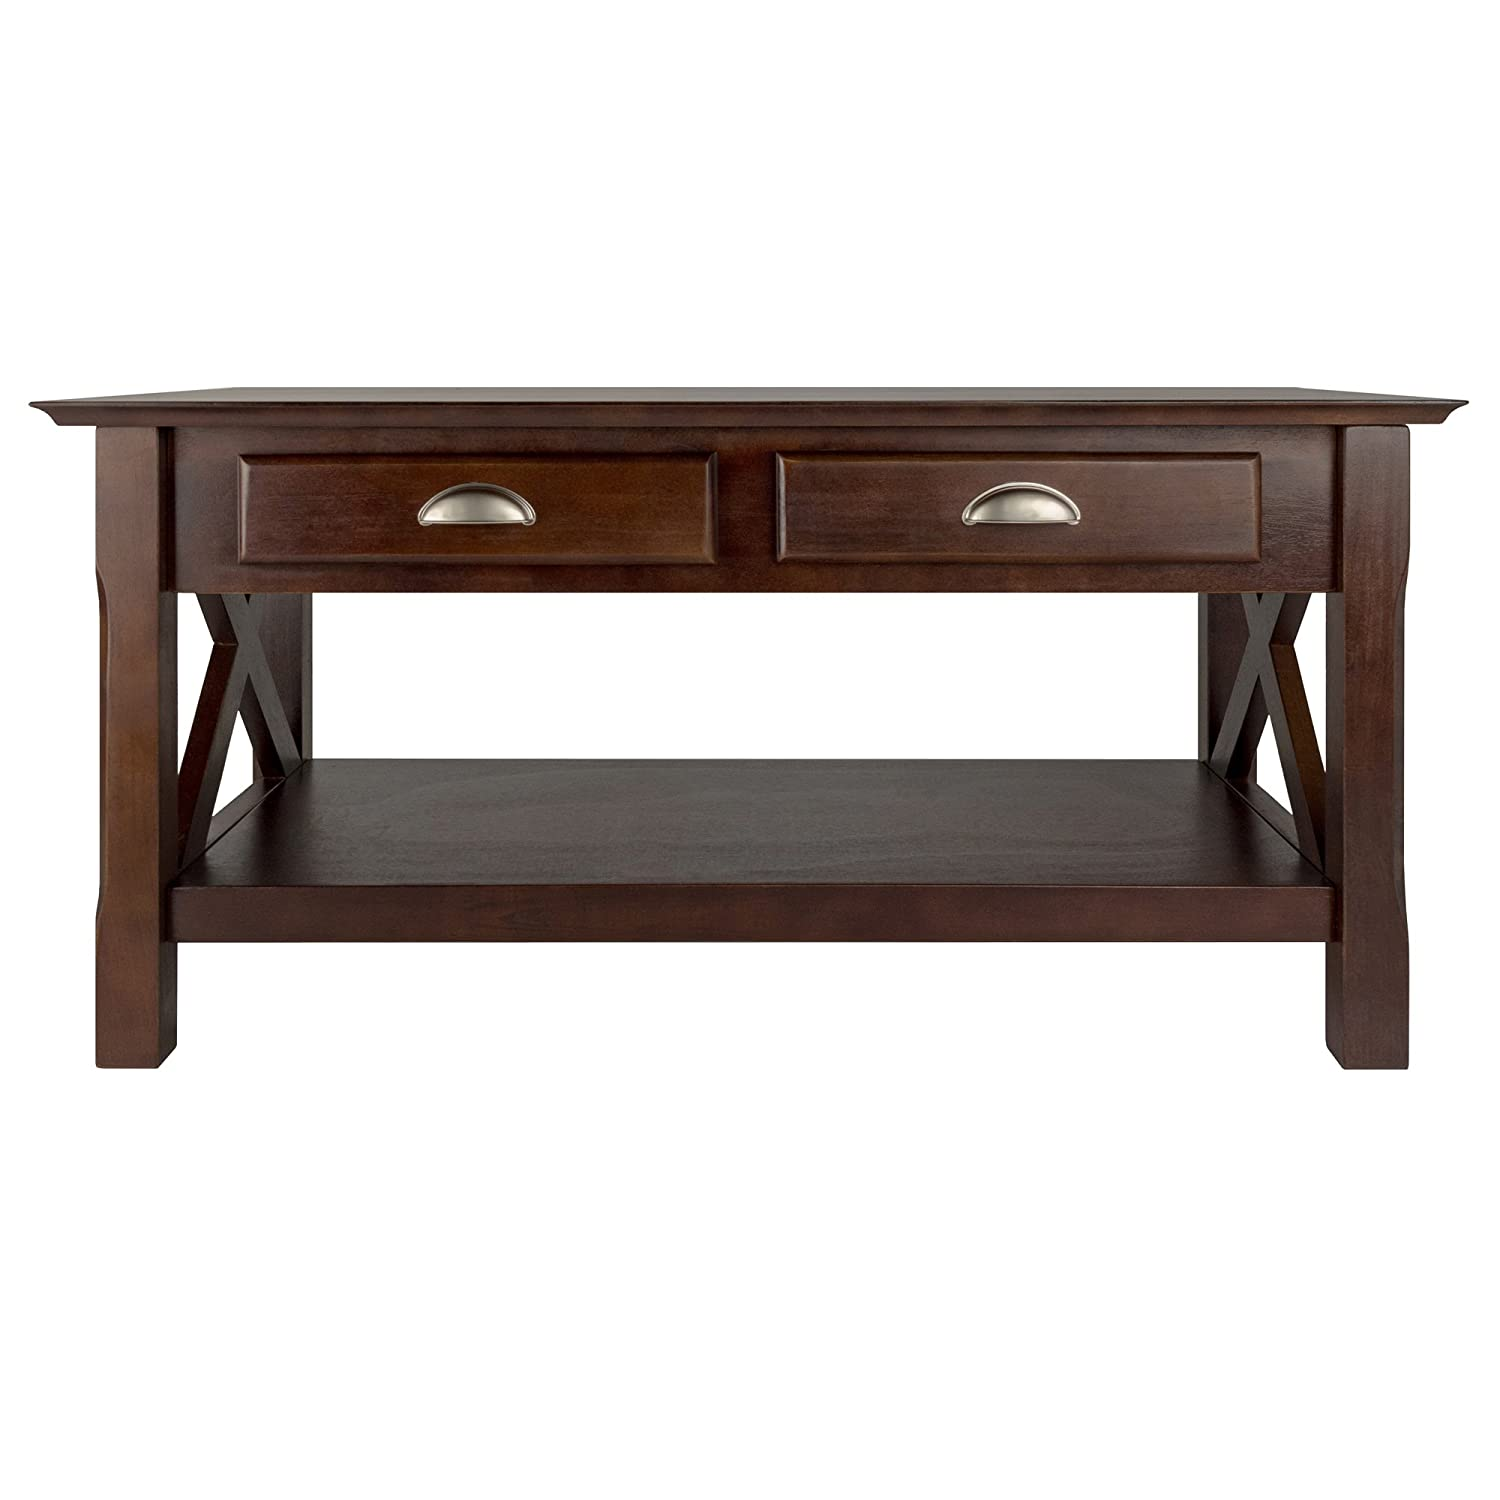 Winsome Wood 40538 Xola Occasional Table Cappuccino Finish